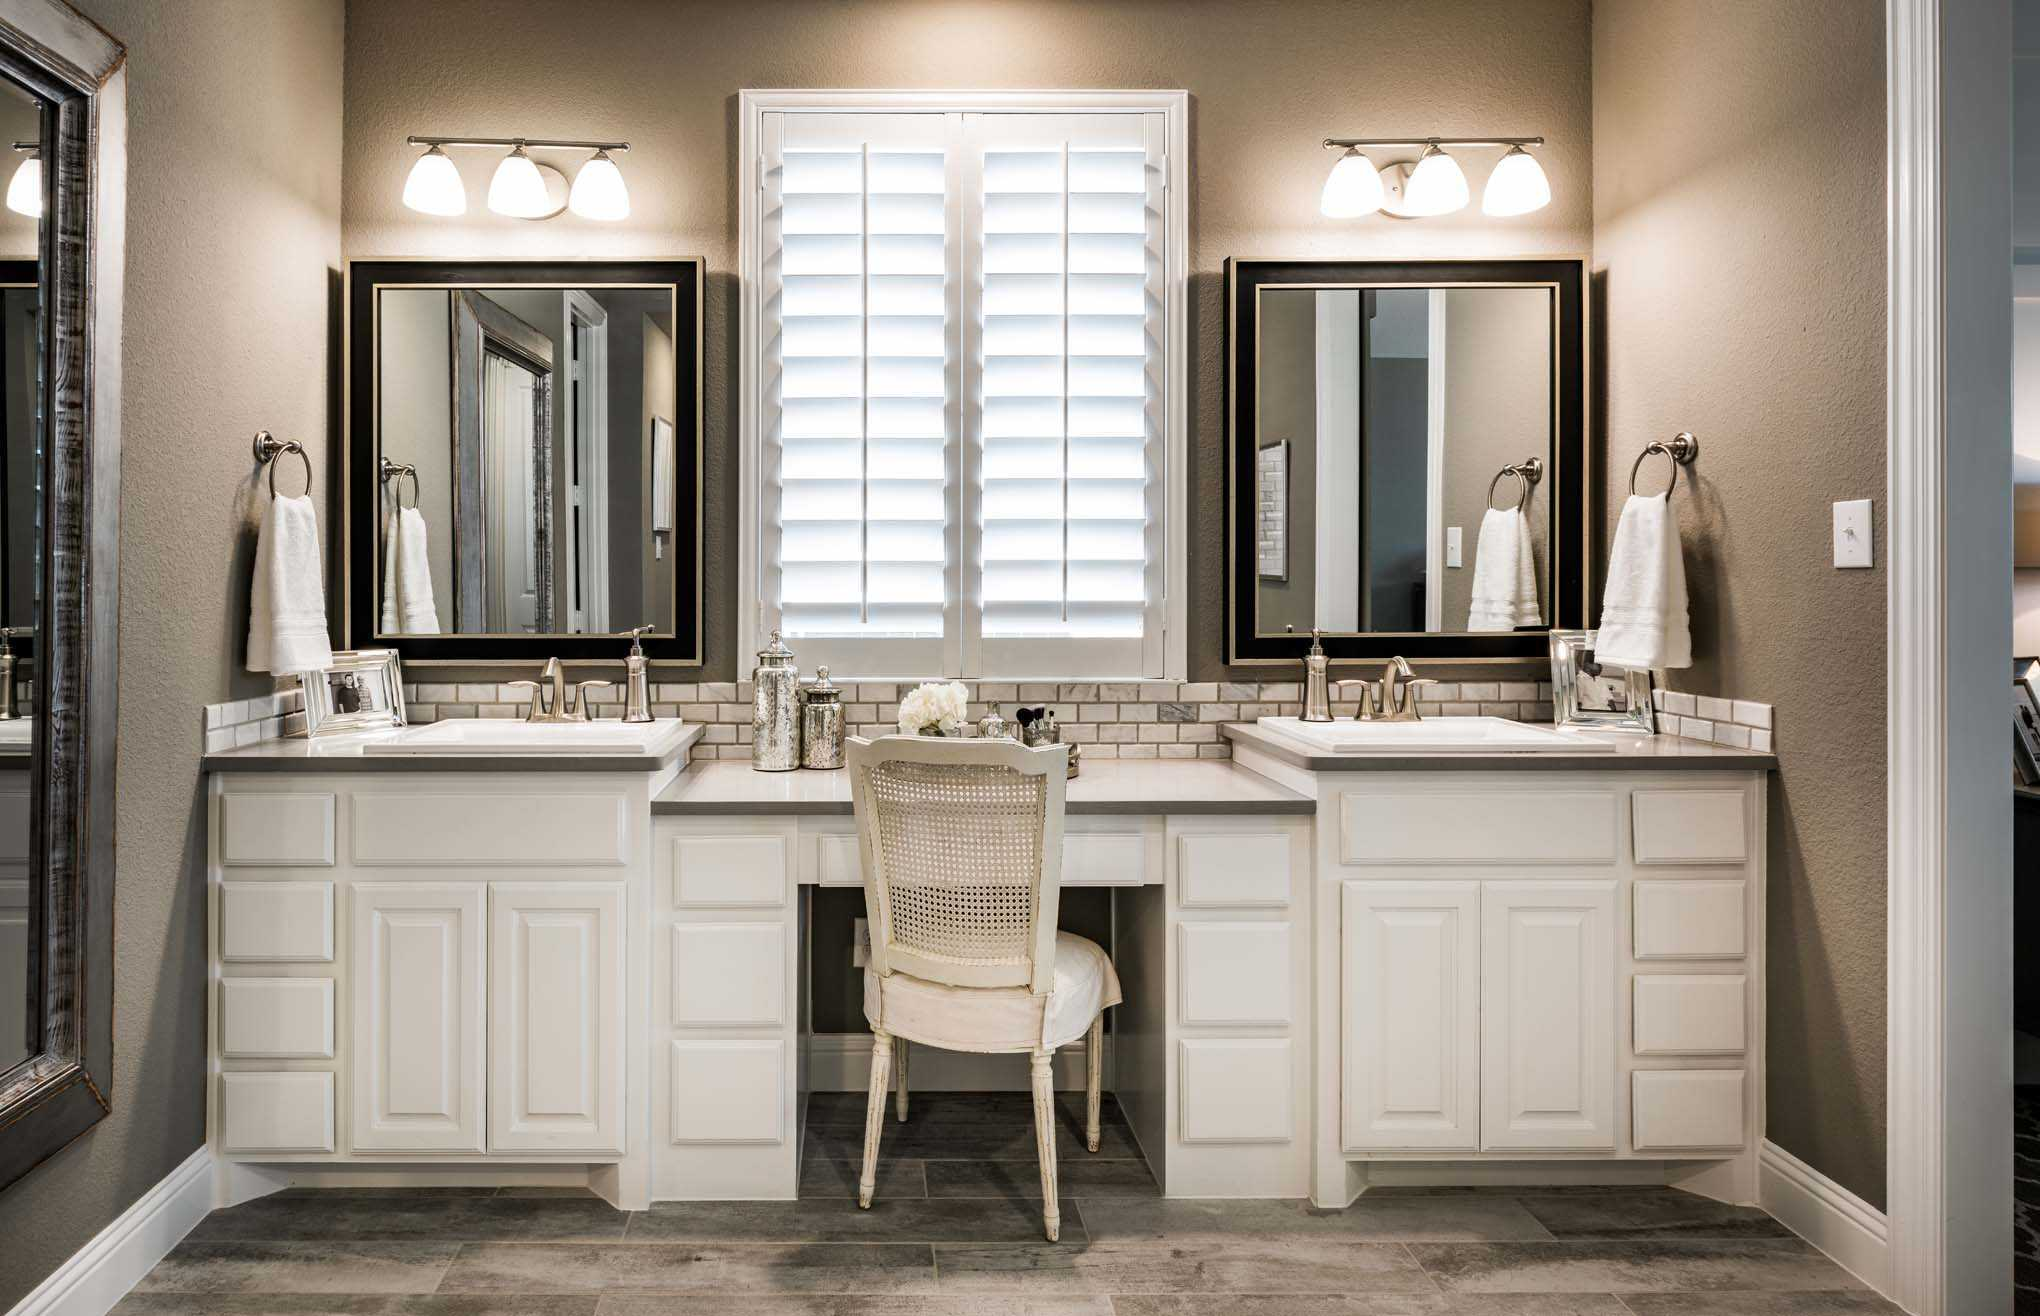 Bathroom featured in the Plan 208 By Highland Homes in Houston, TX